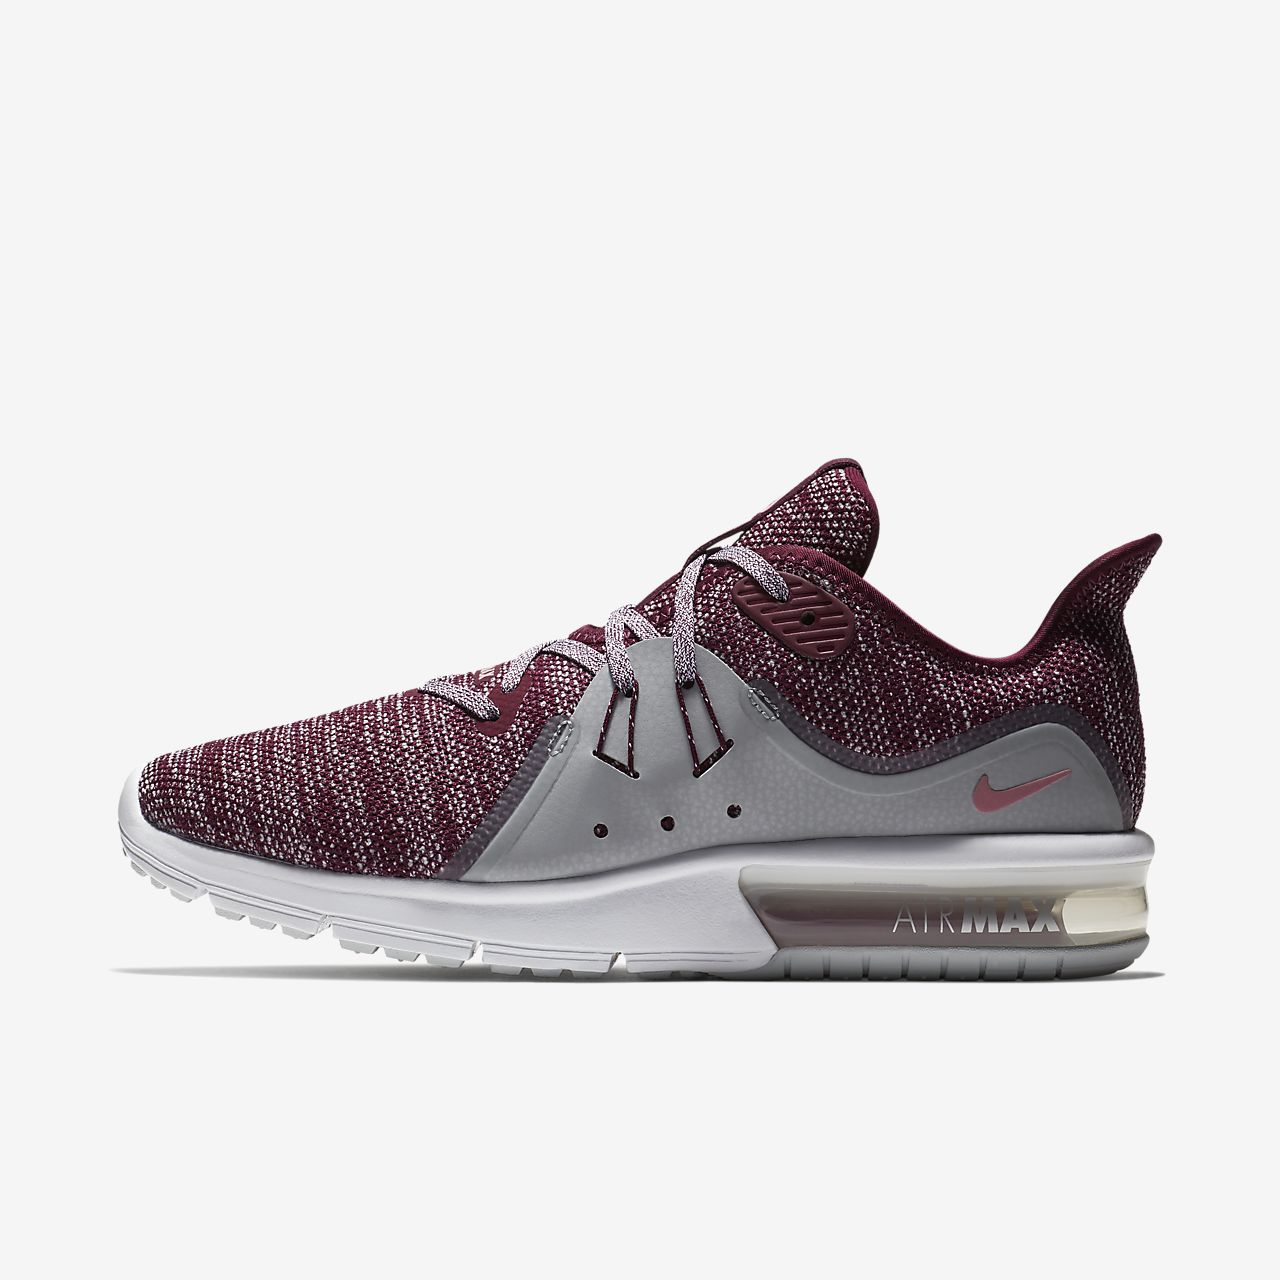 52c4b4fc22 Nike Air Max Sequent 3 Women's Shoe. Nike.com GB